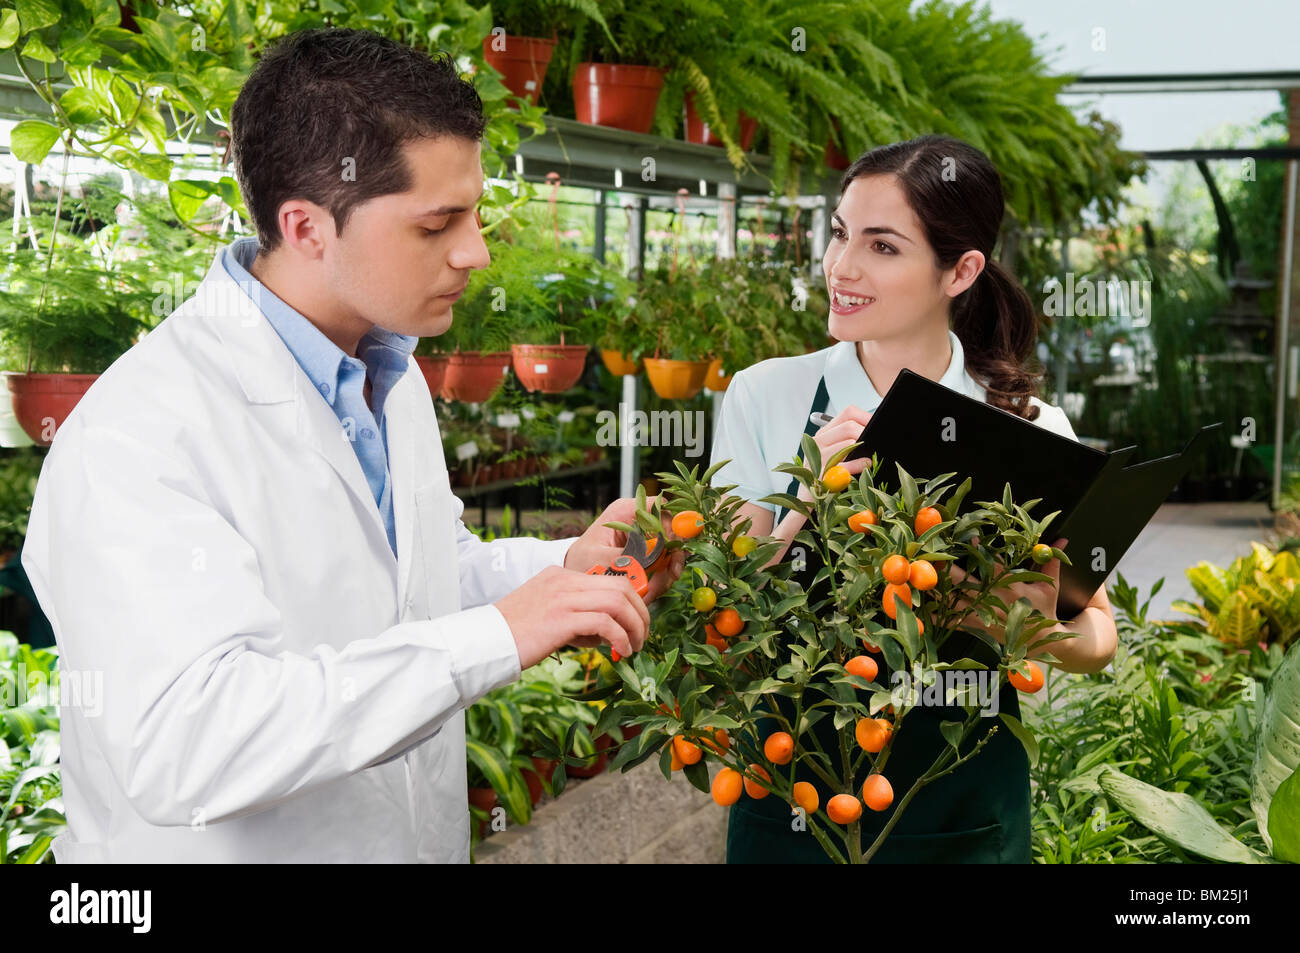 Scientist examining a plant in a greenhouse - Stock Image